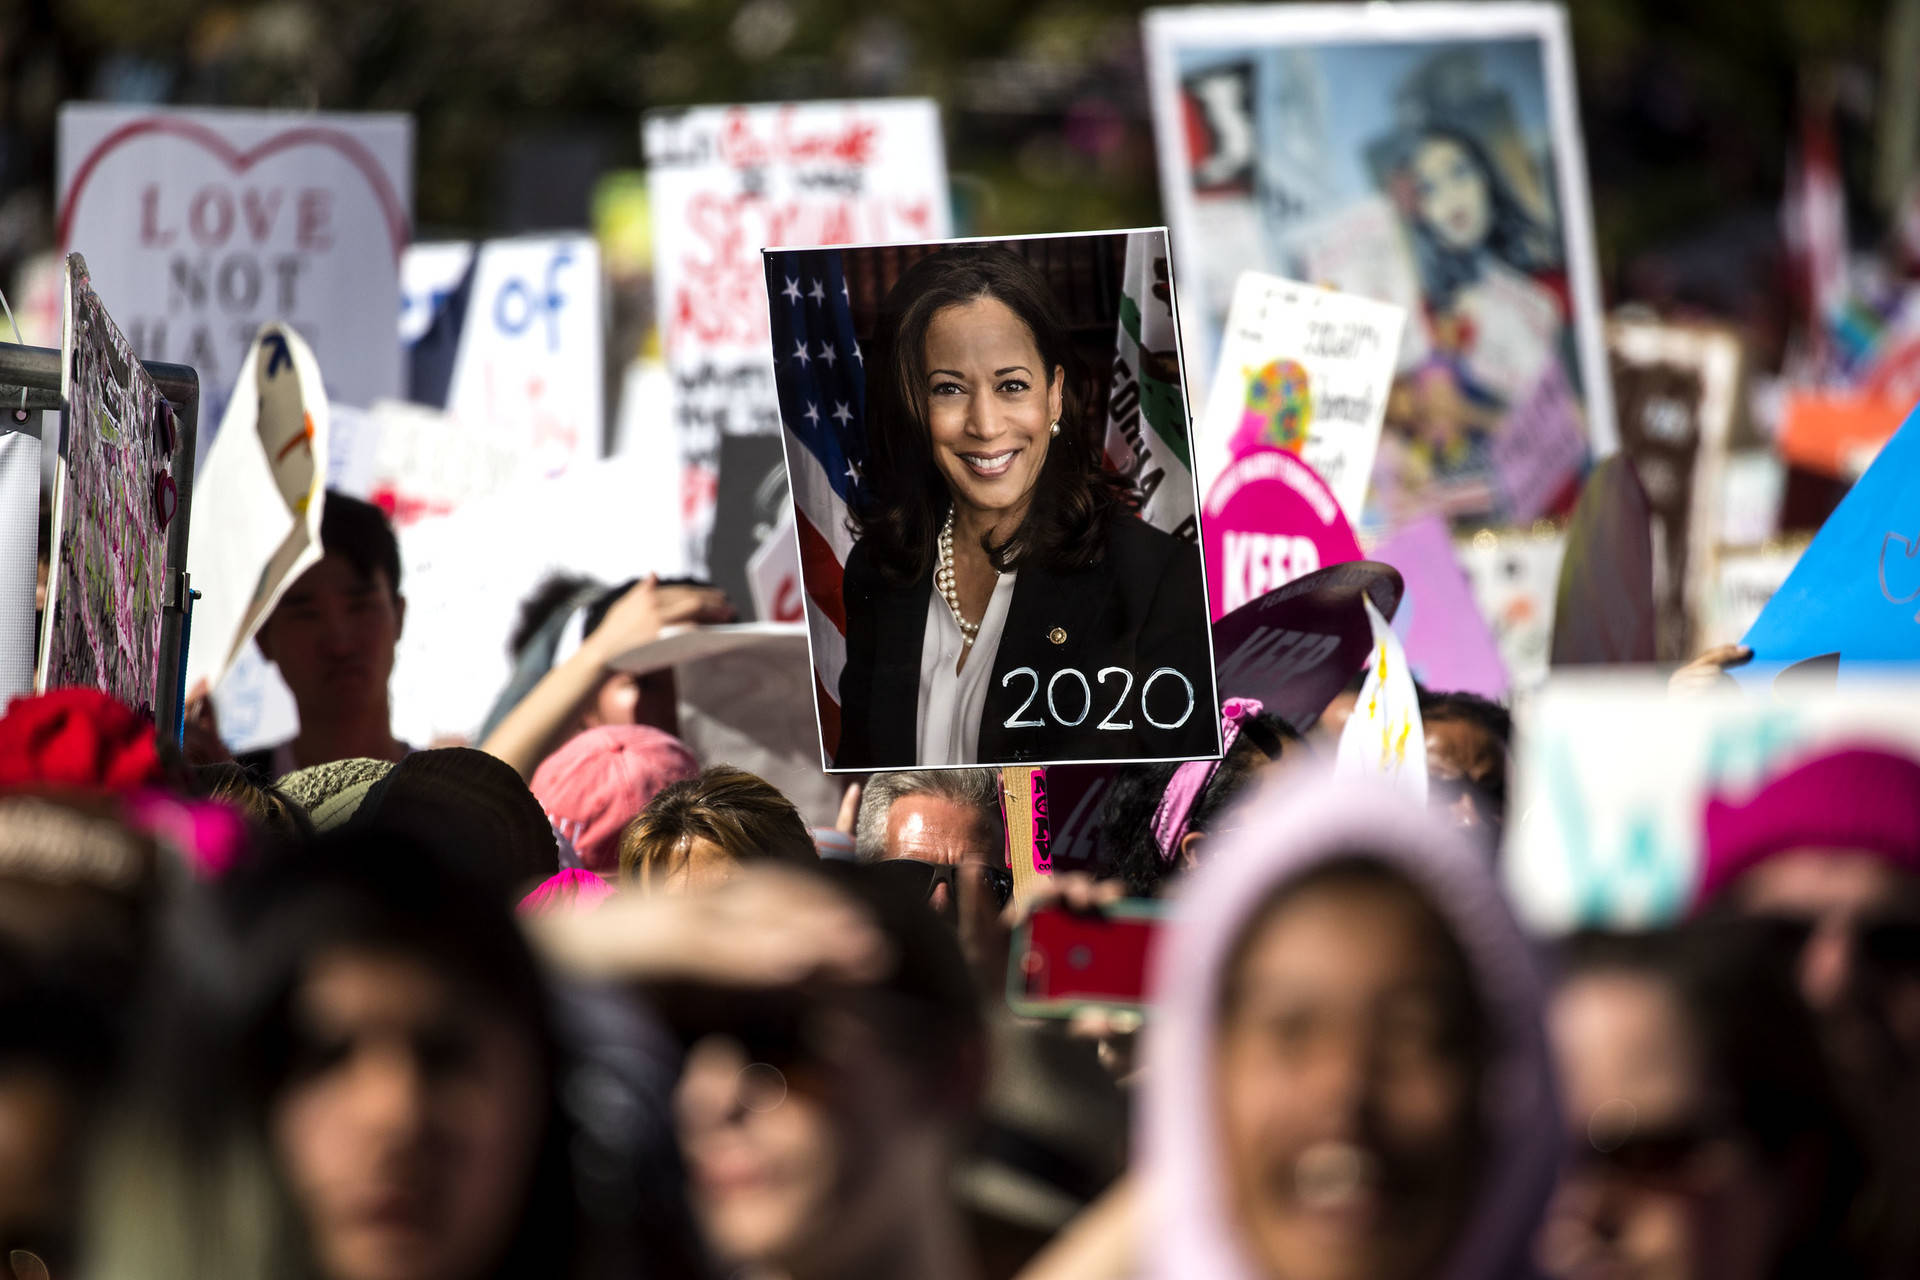 A person holds a poster of California U.S. Sen. Kamala Harris with '2020' written on it at the Women's March in Los Angeles on Jan. 19, 2019. Harris announced her candidacy for president on Monday, January 21, 2019. Barbara Davidson/Getty Images